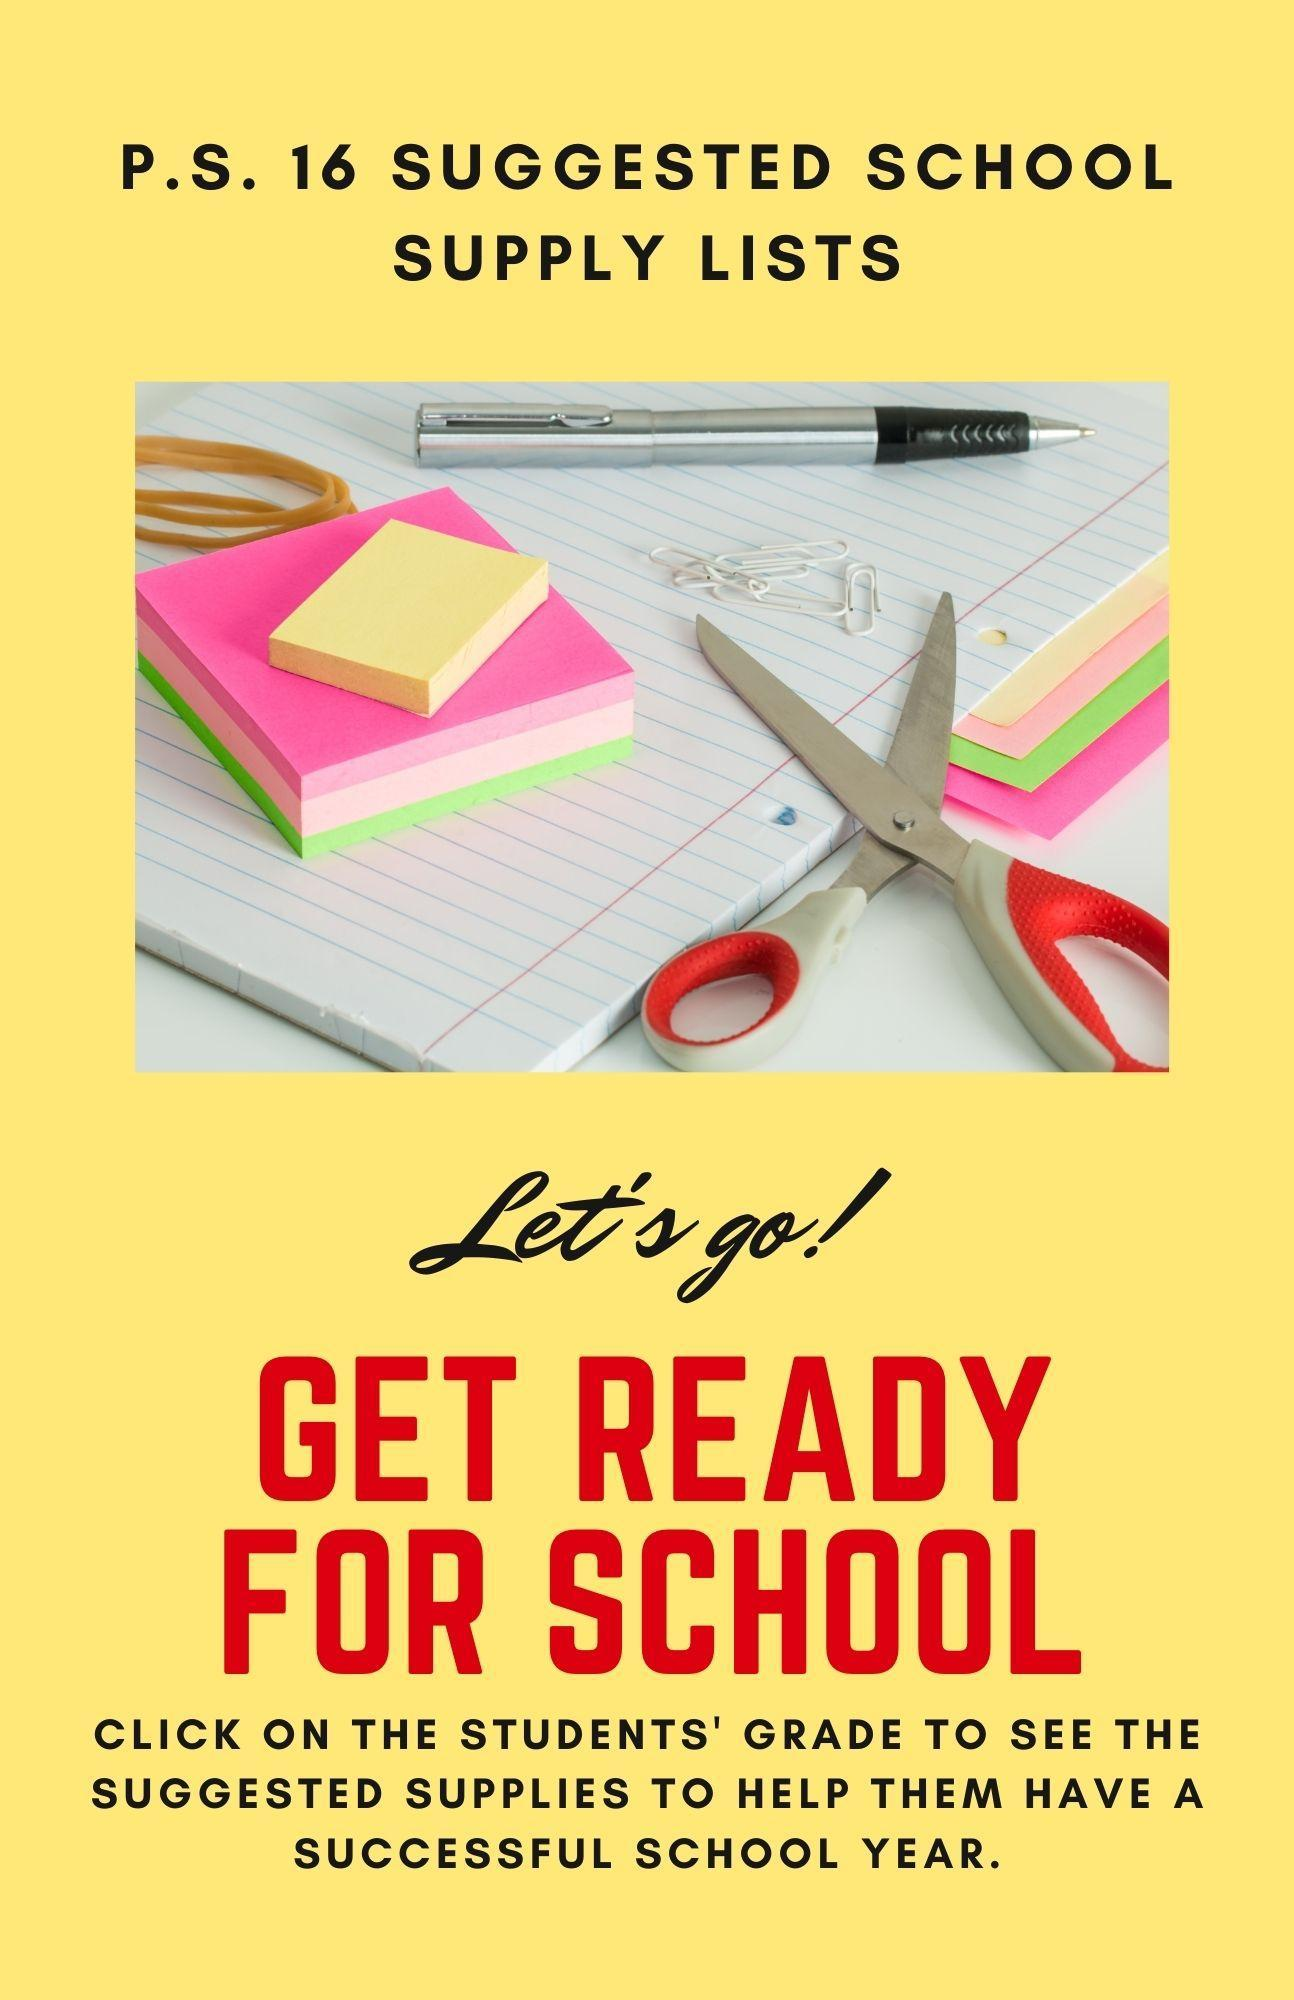 suggested school supply flyer. Includes a notebook and basic school supplies. Text on the picture suggests supplies are just a suggestion and will aid students in having a successful school year.